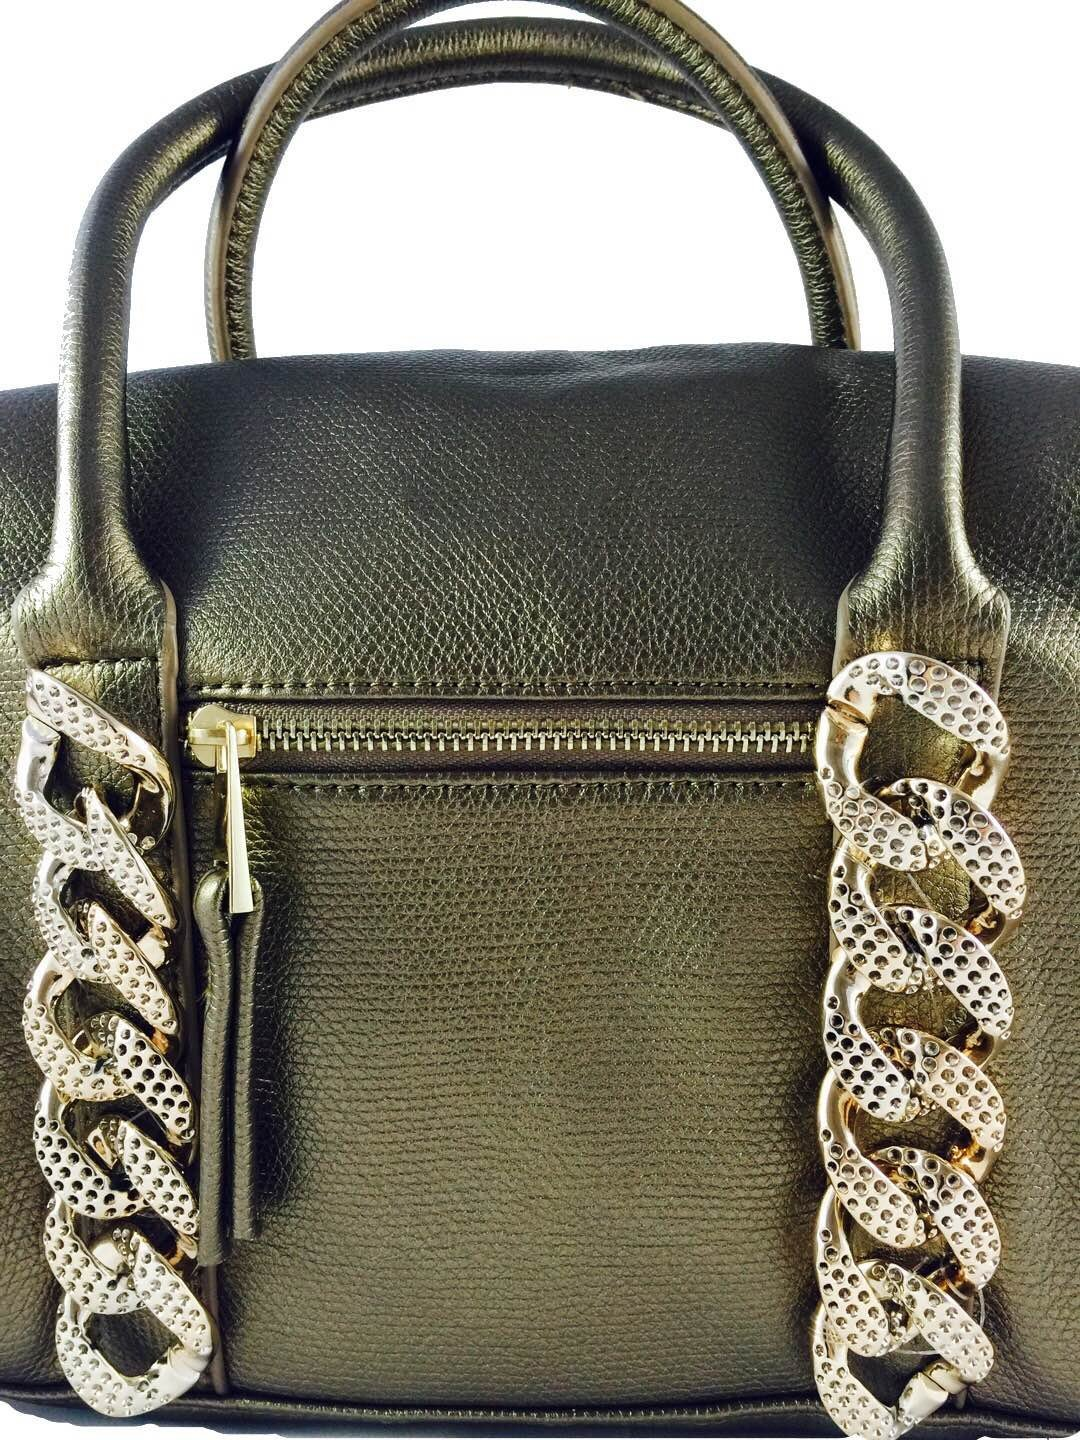 Gold chain tote bag - handmade-bags